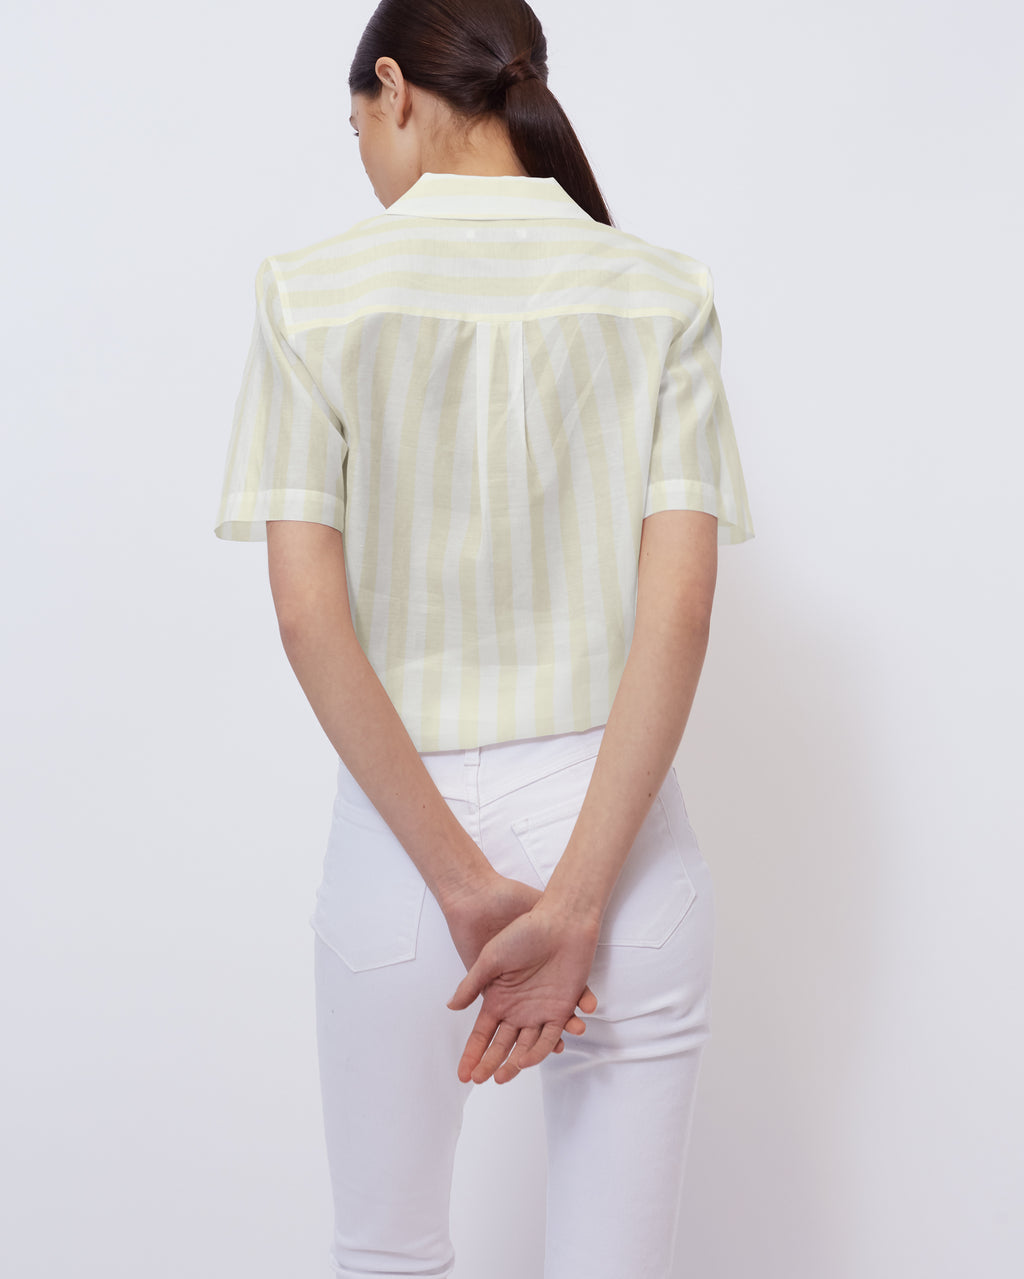 The Ruby Top in Optic White/ Sunkiss